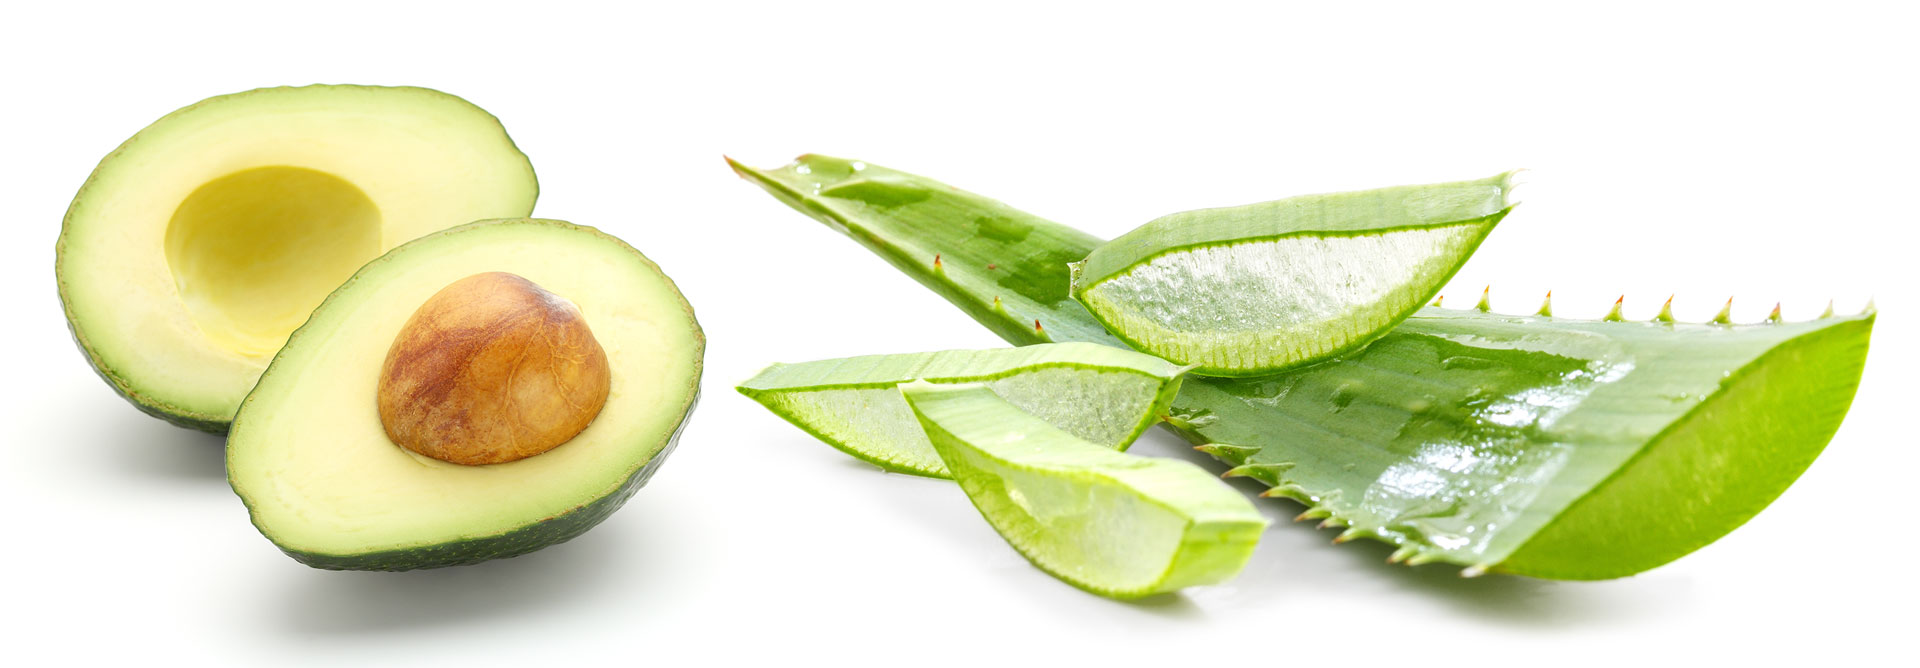 Avocado and Aloe